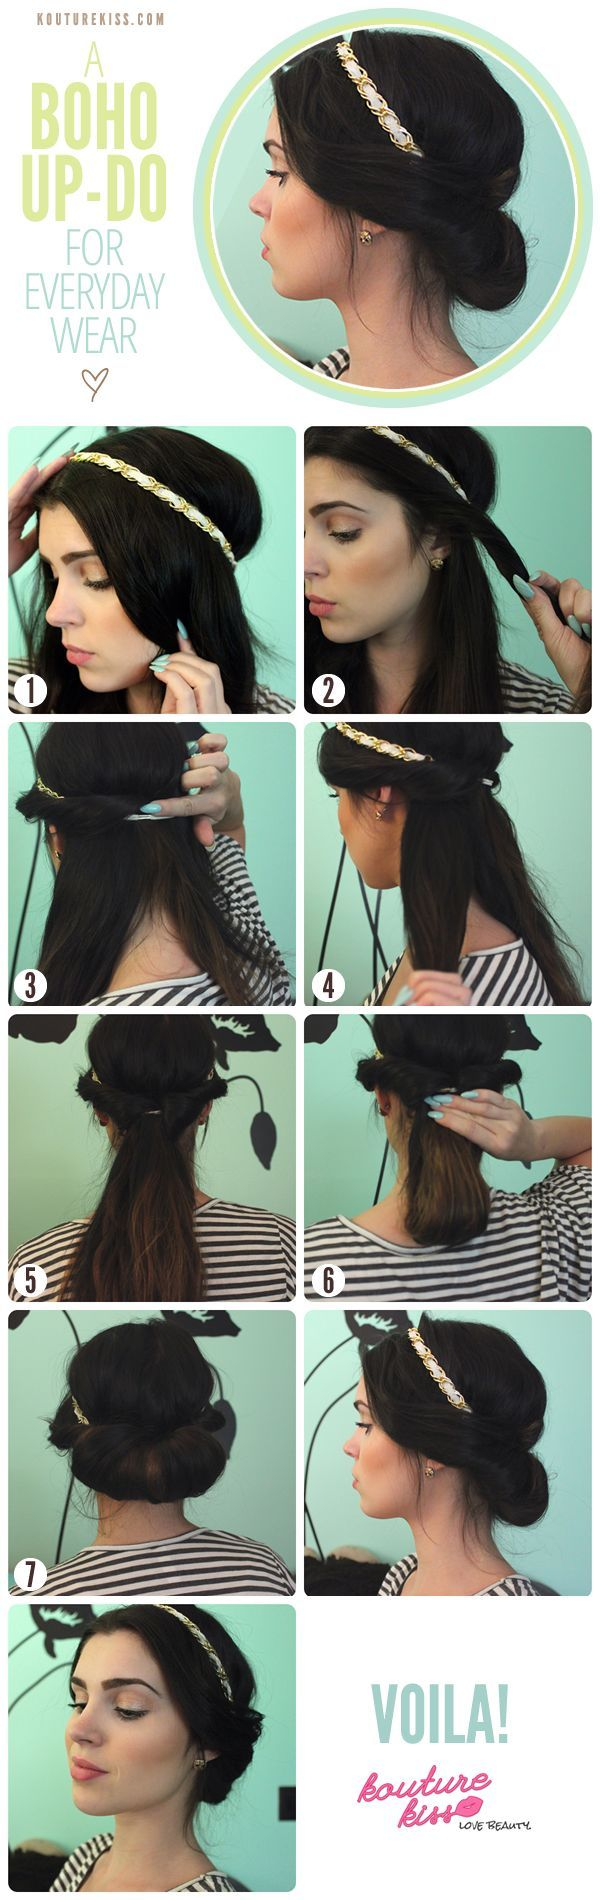 5 Hairstyles to Withstand UMass Wind Coiffure boheme